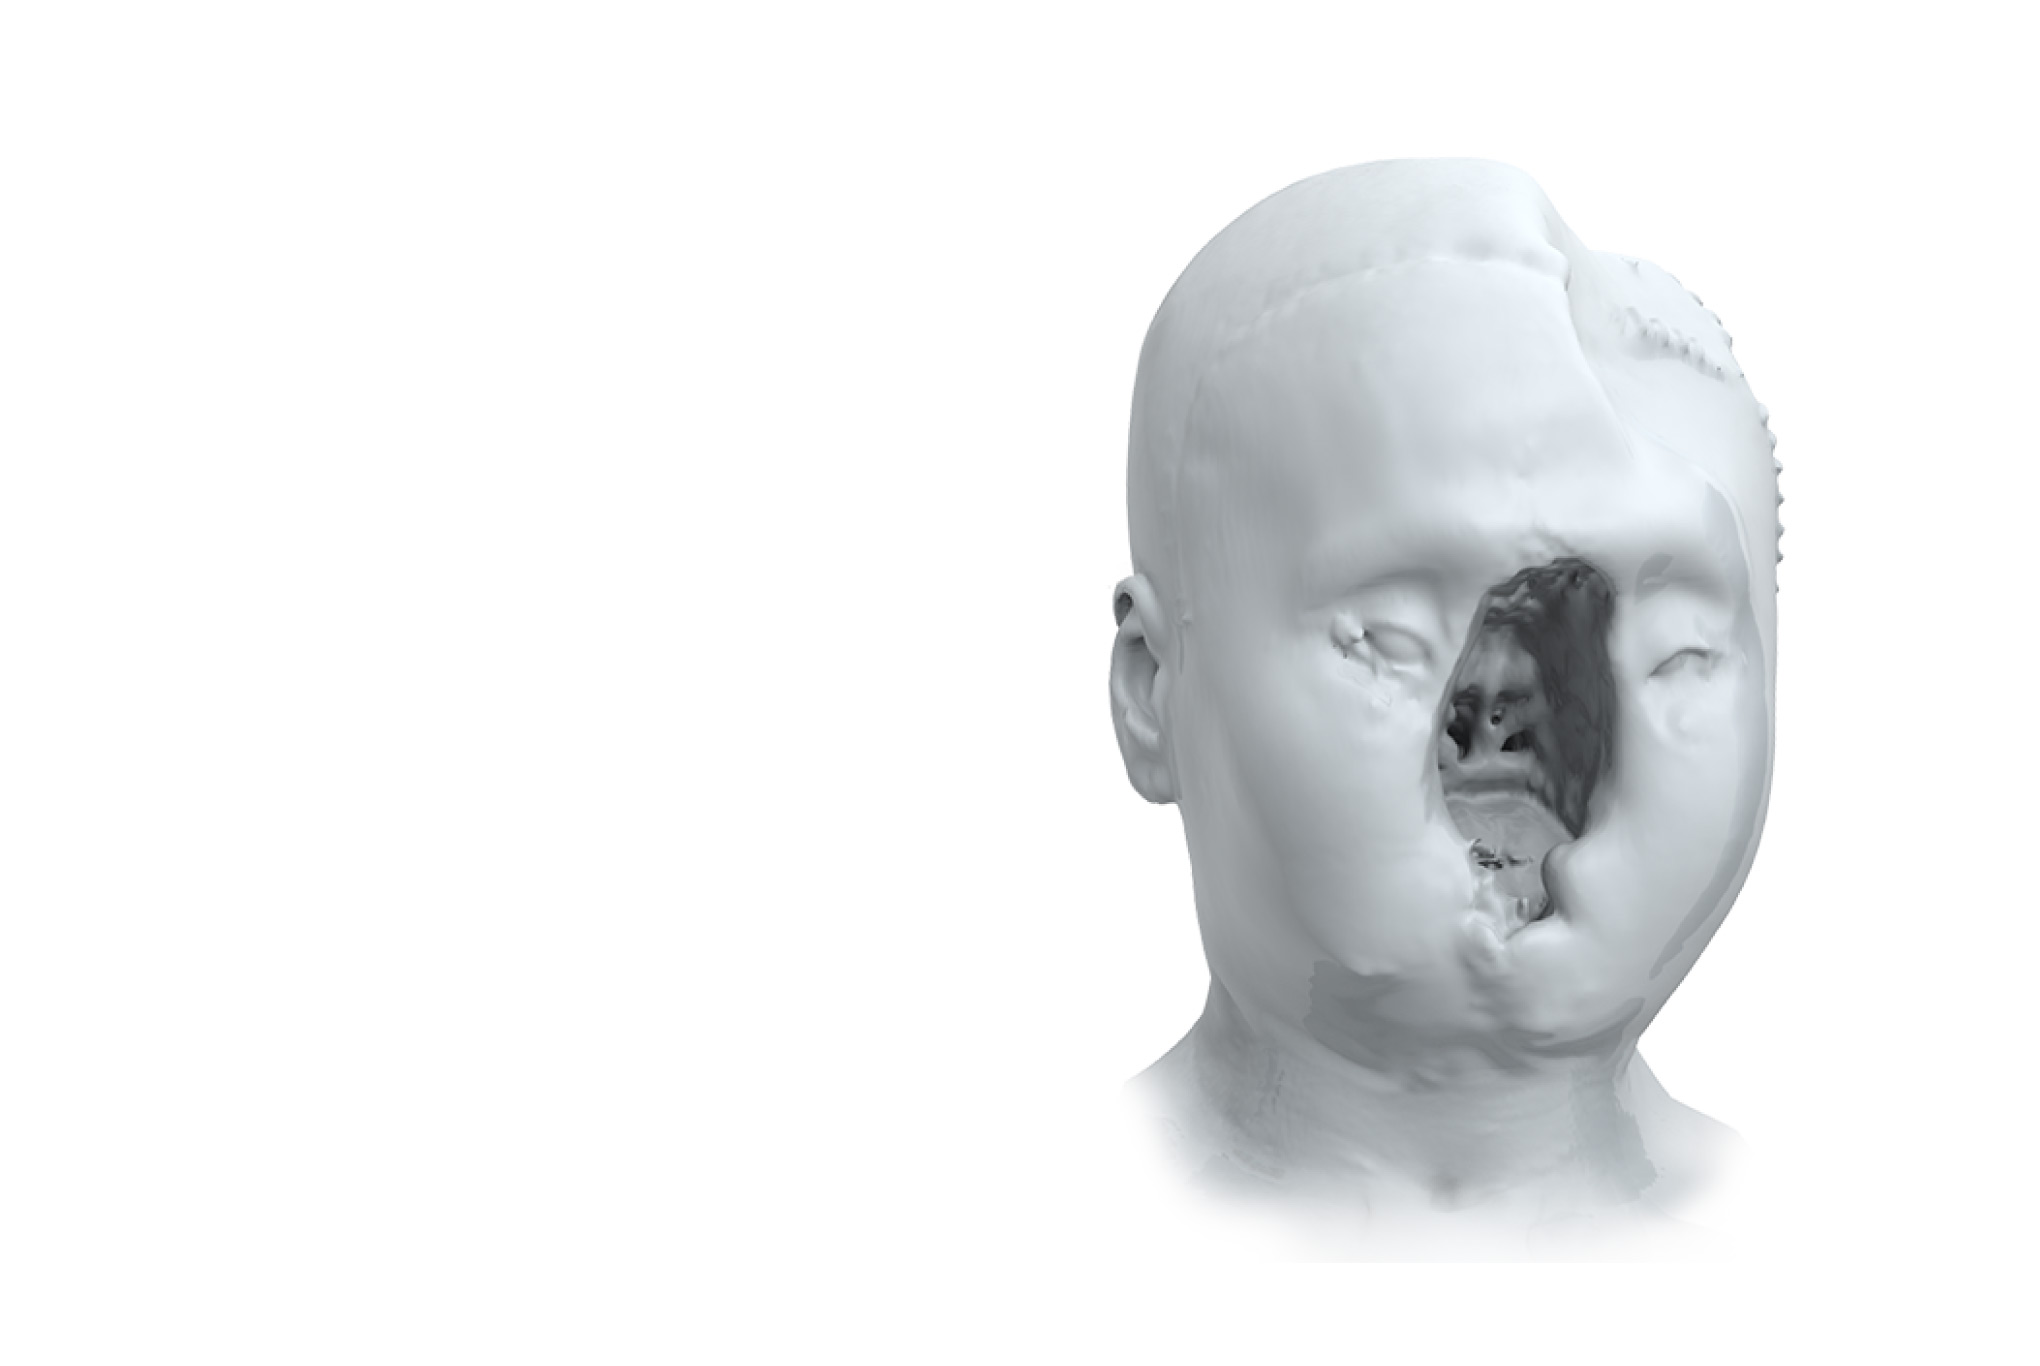 See How Trailblazing Science Fixed A Wounded Face